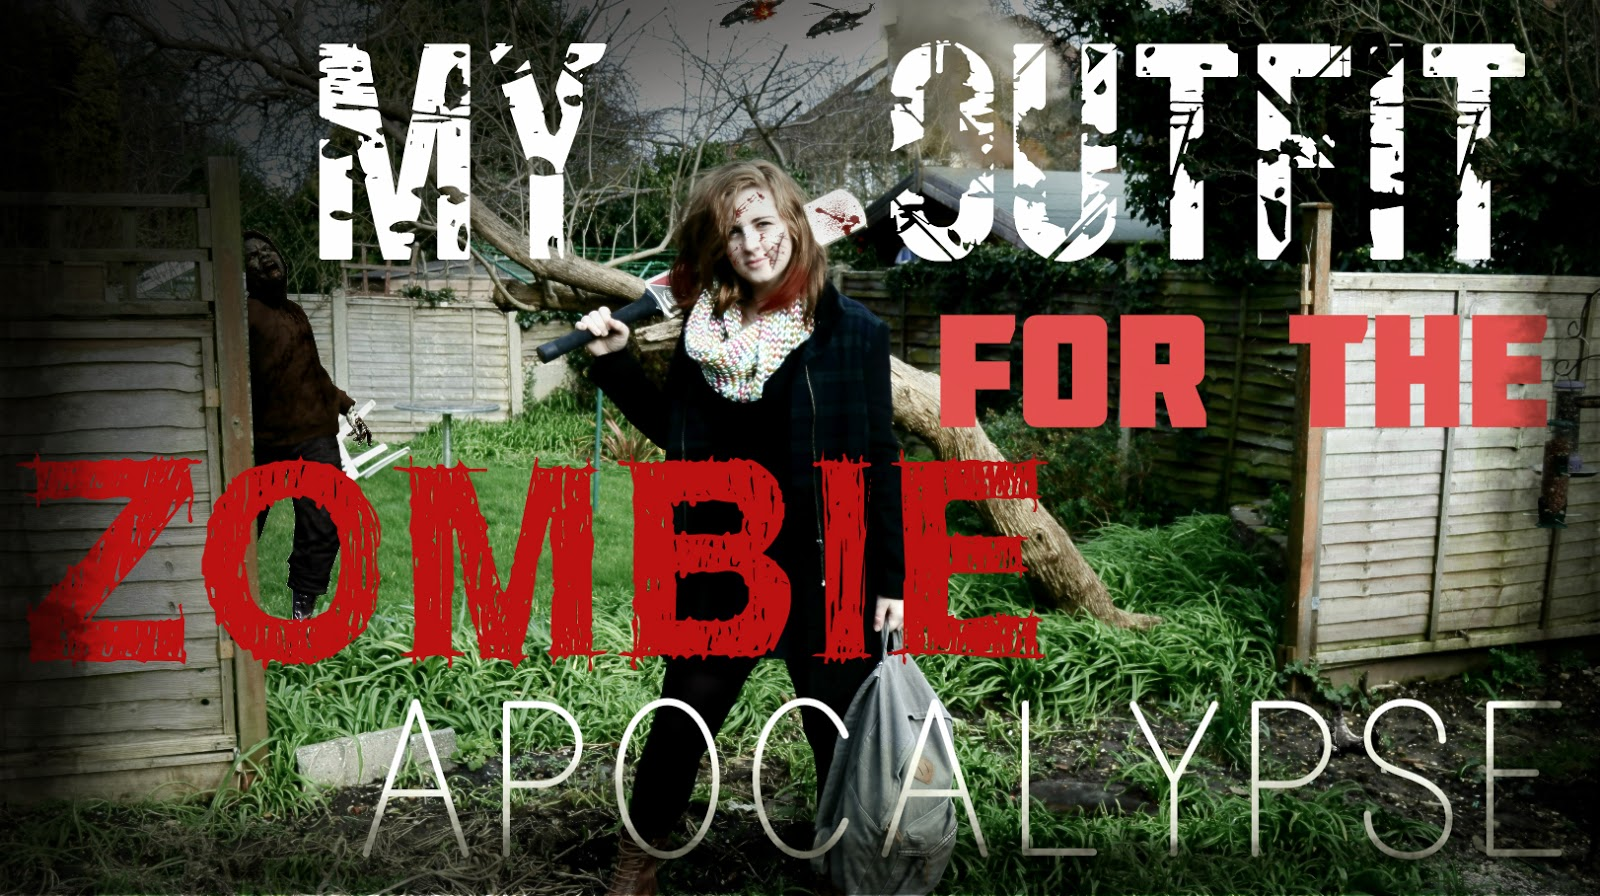 http://kerryshabitat.blogspot.co.uk/2014/02/what-outfit-would-you-choose-in-zombie.html